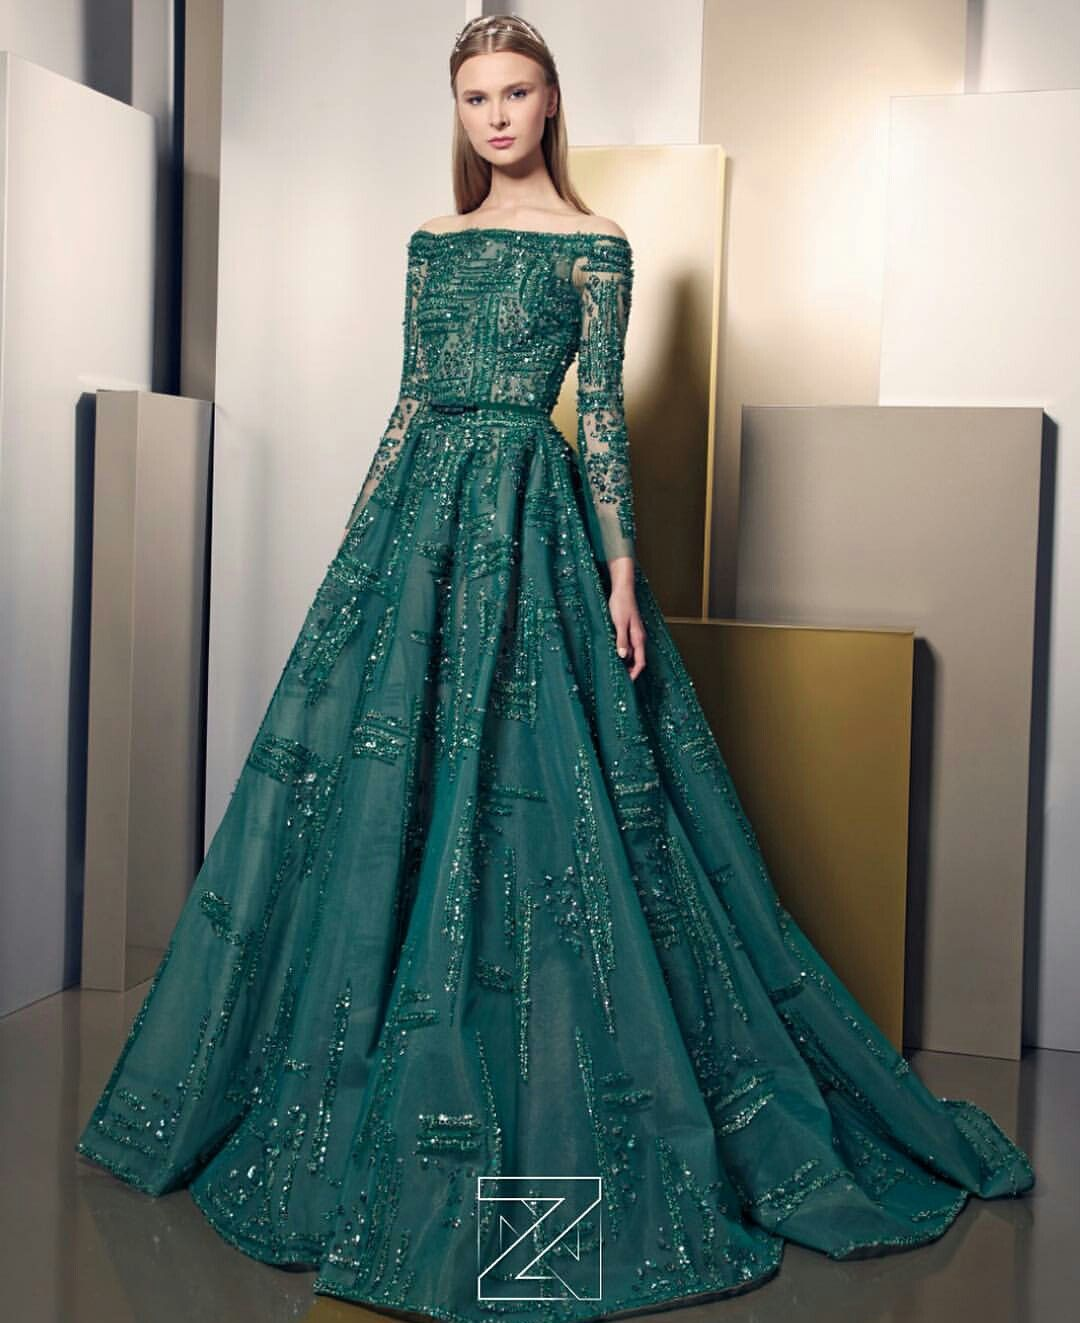 Ziad Nakad | Dresses | Pinterest | Gowns, Prom and Loafers outfit